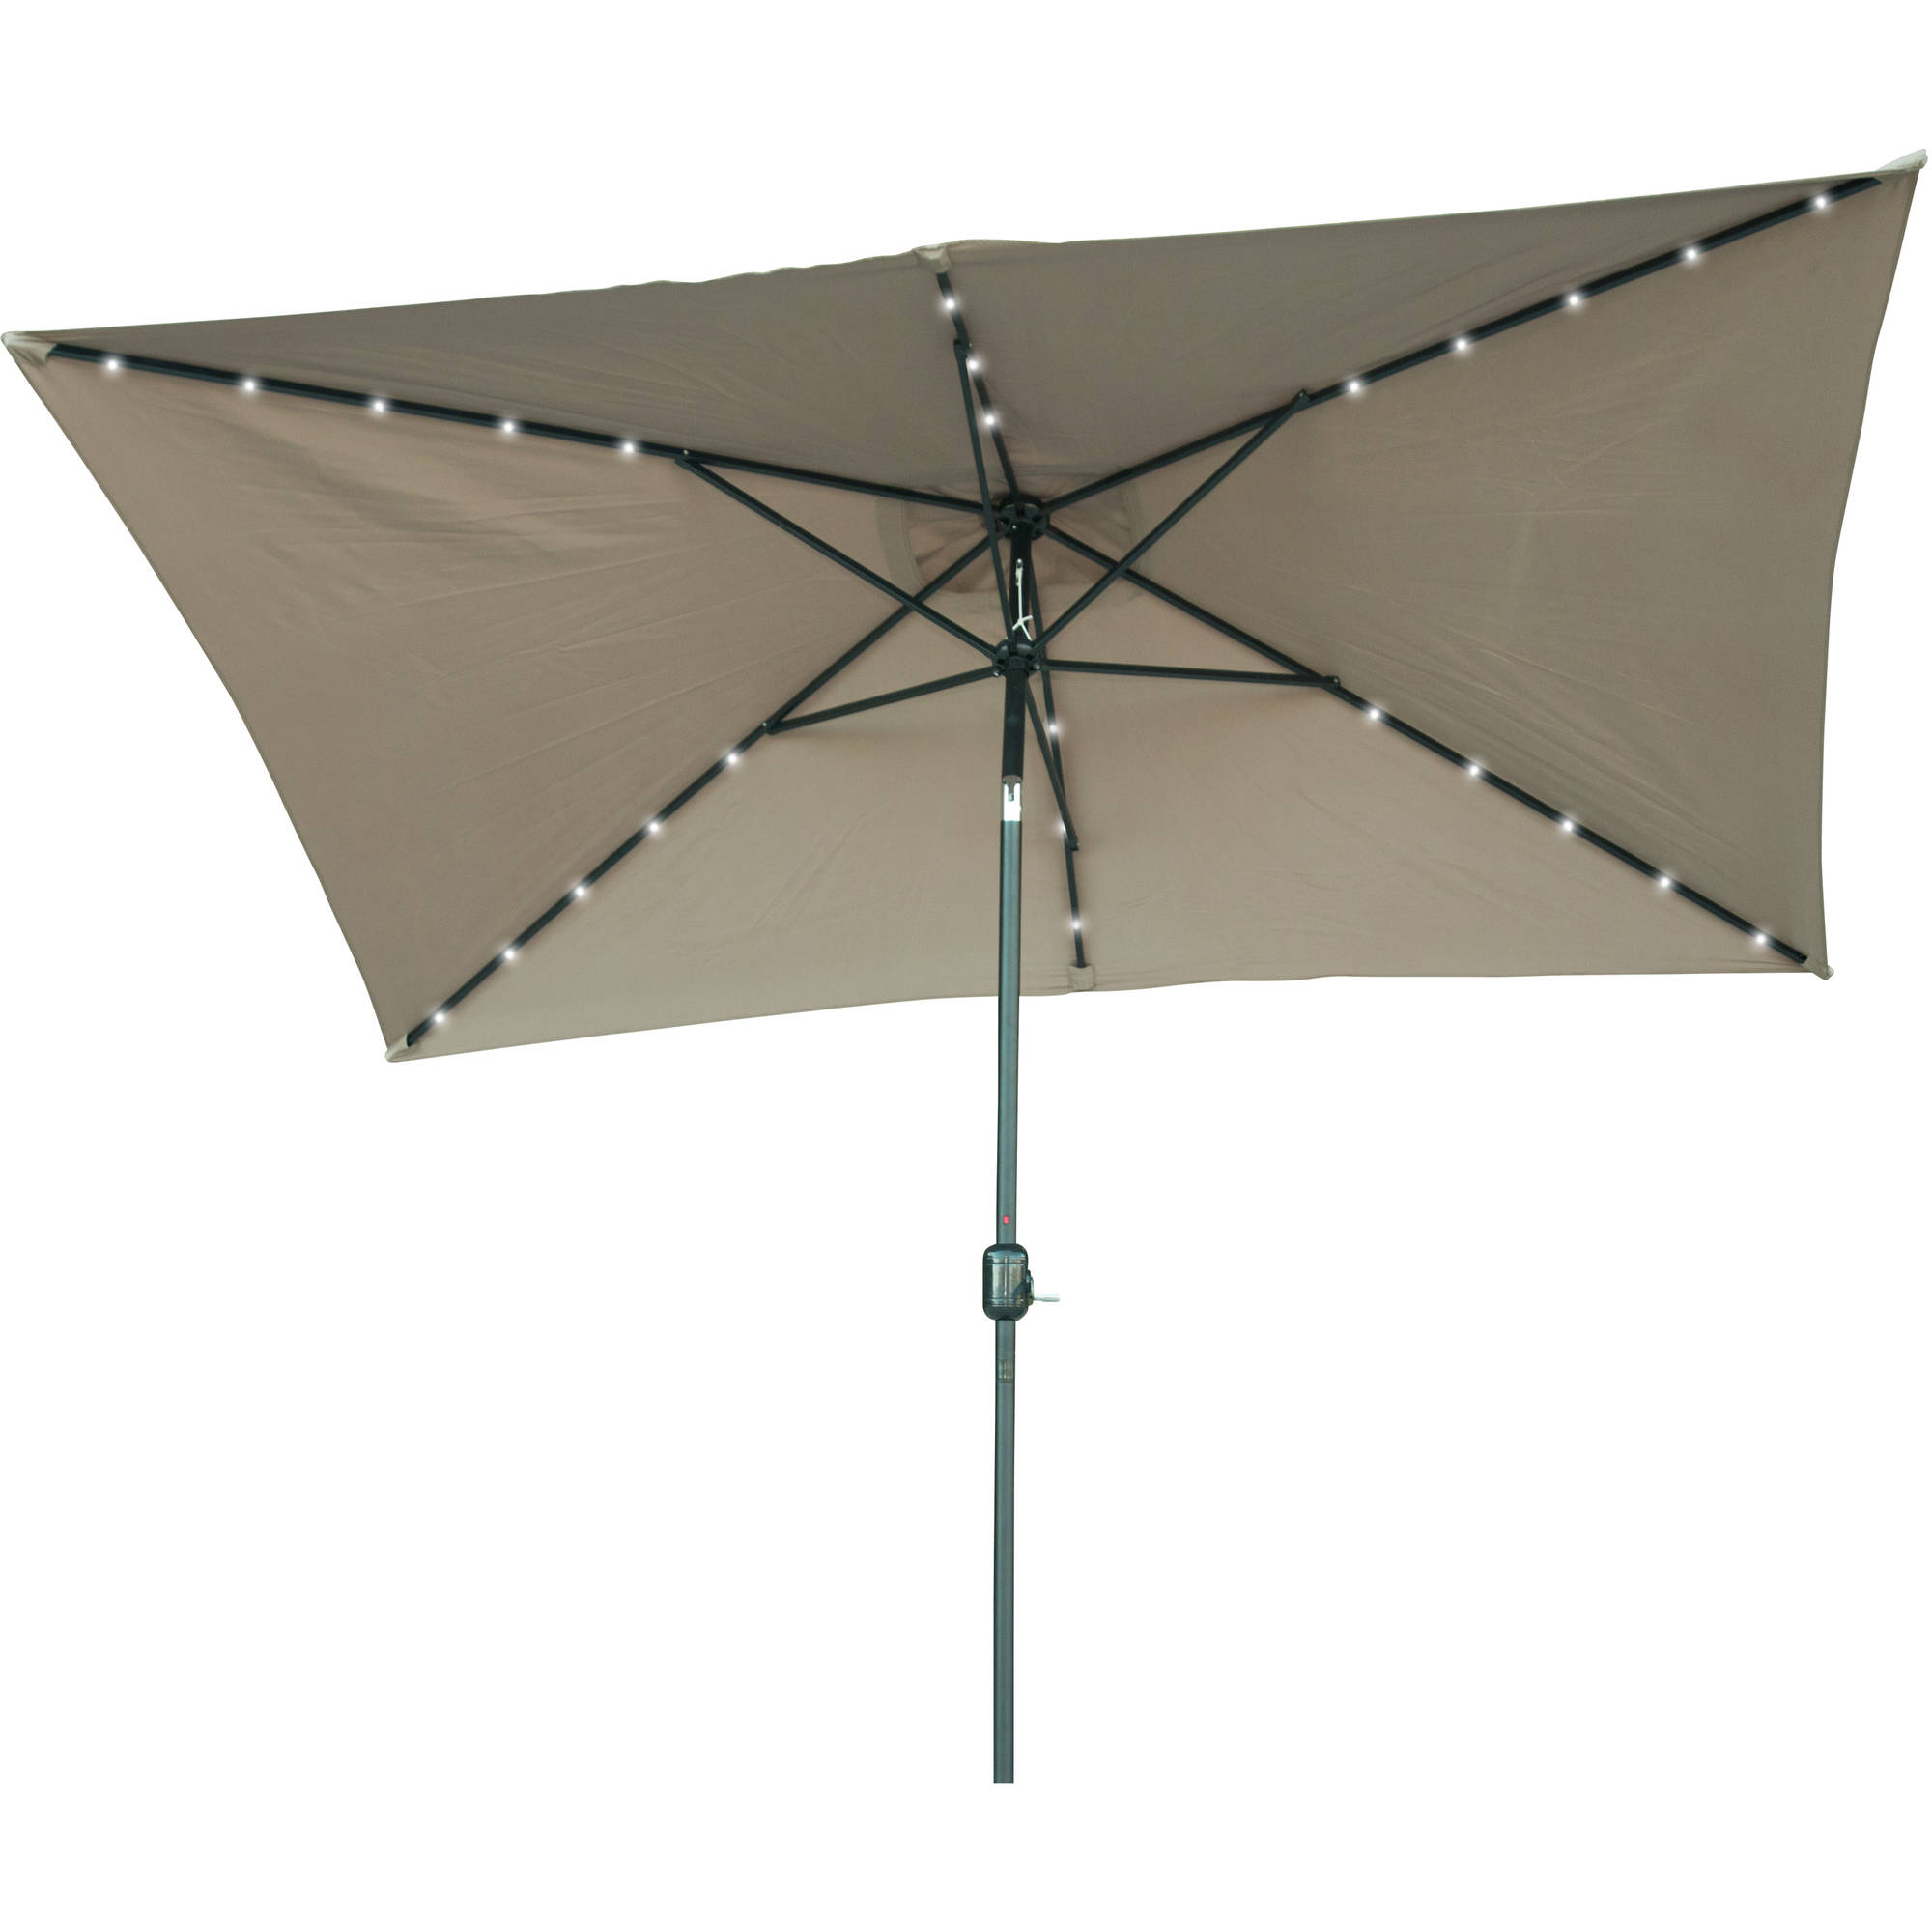 Rectangular Solar Powered LED Lighted Patio Umbrella - 10' x 6.5' - By Trademark Innovations (Tan)